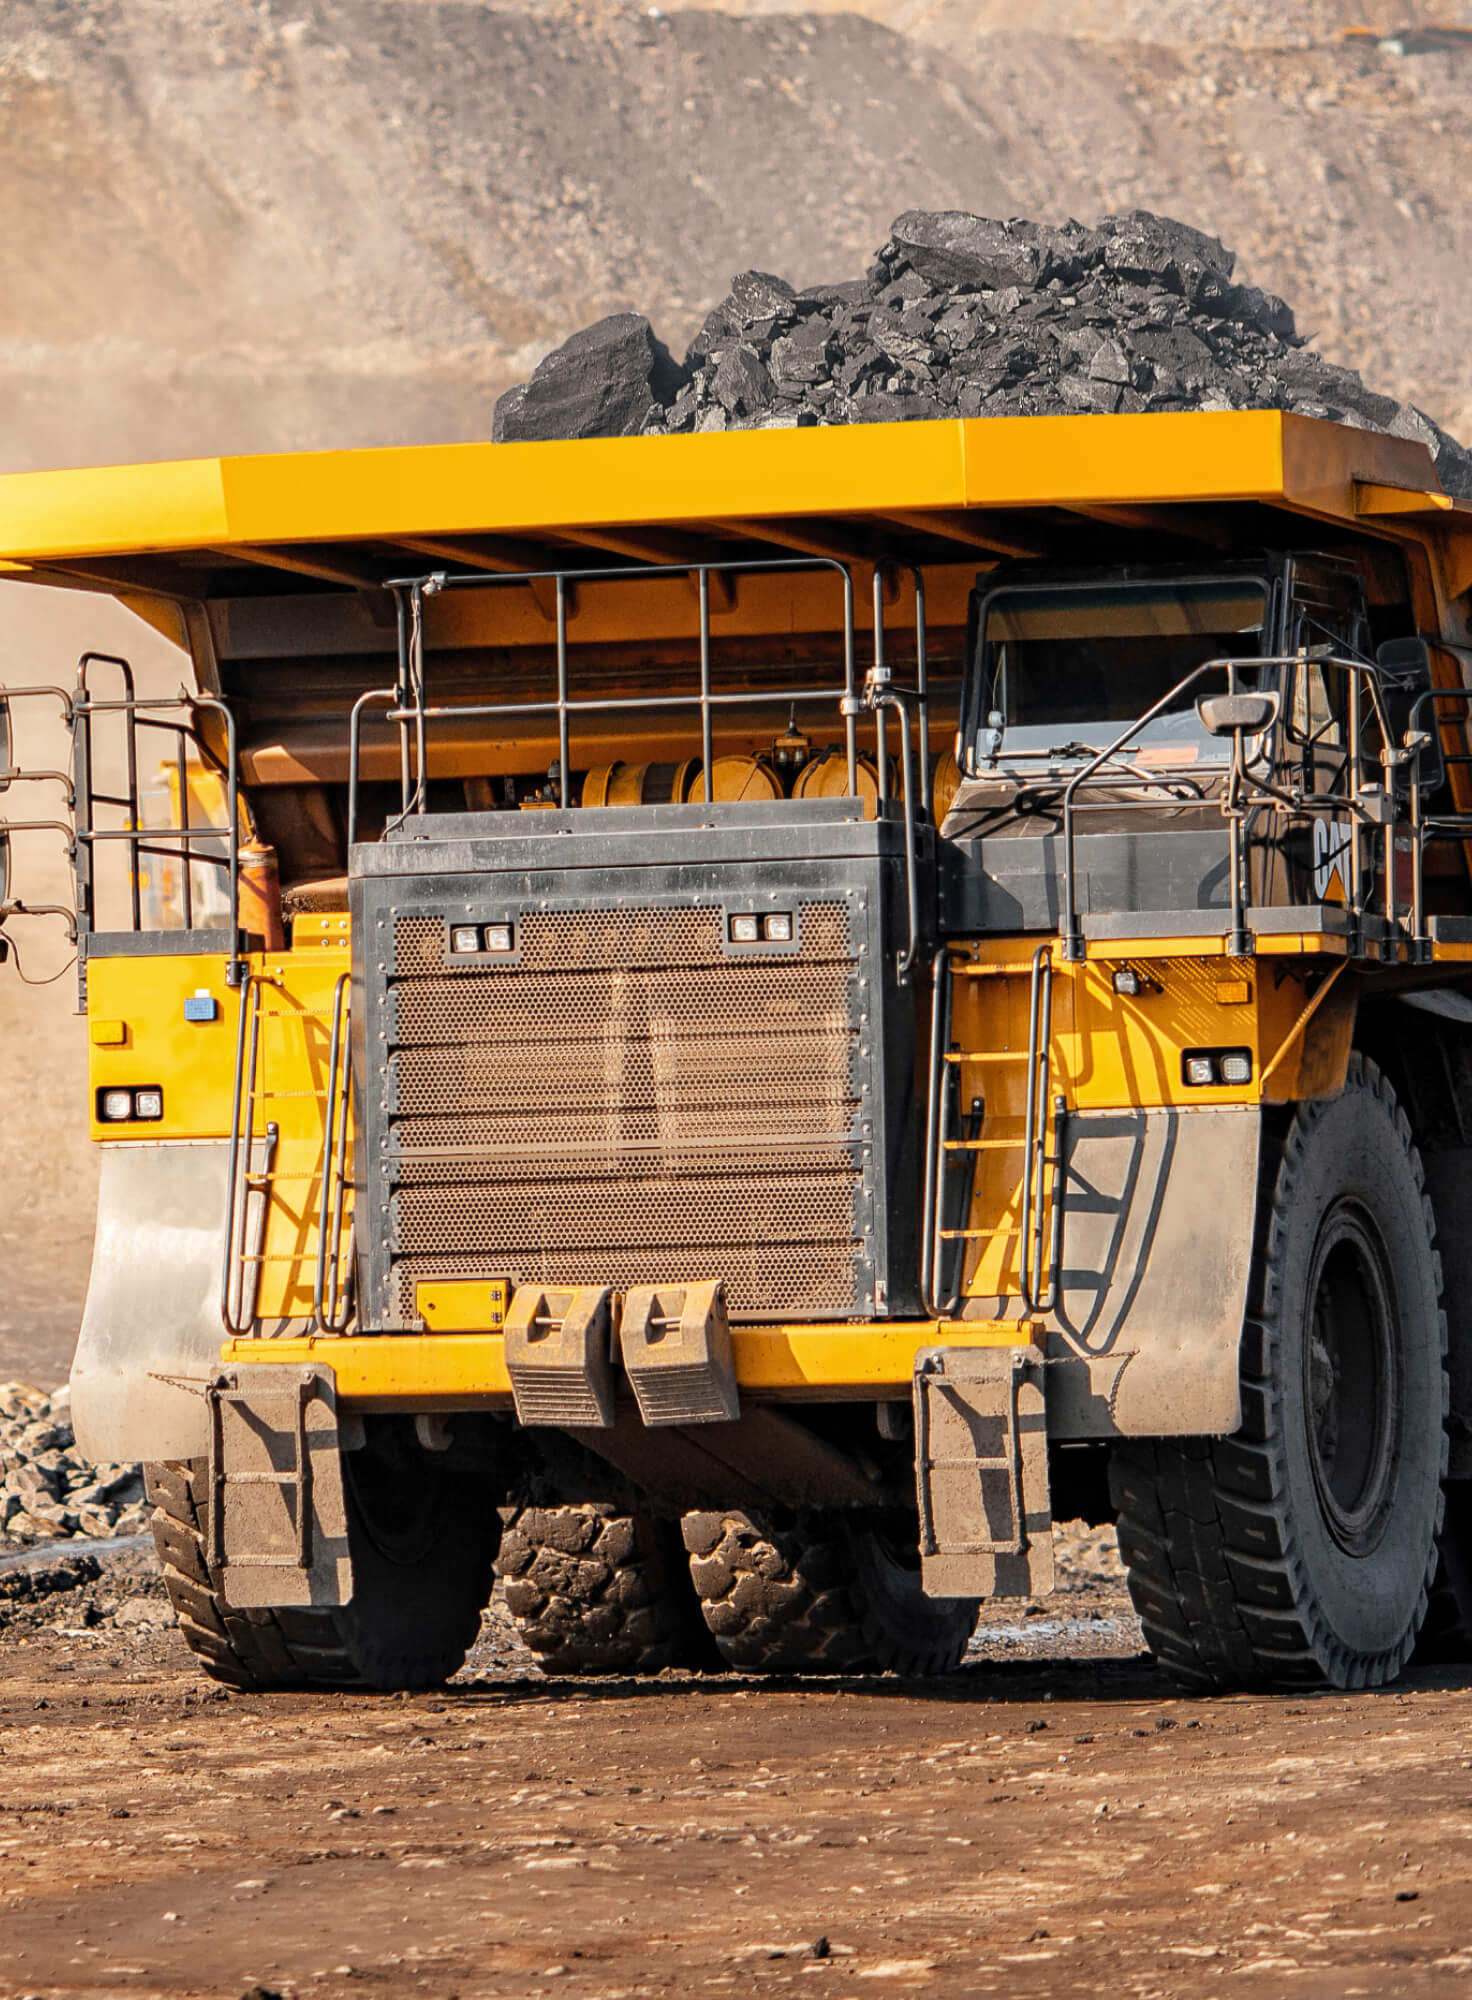 Establishing remote connection for mining facilities in West Africa